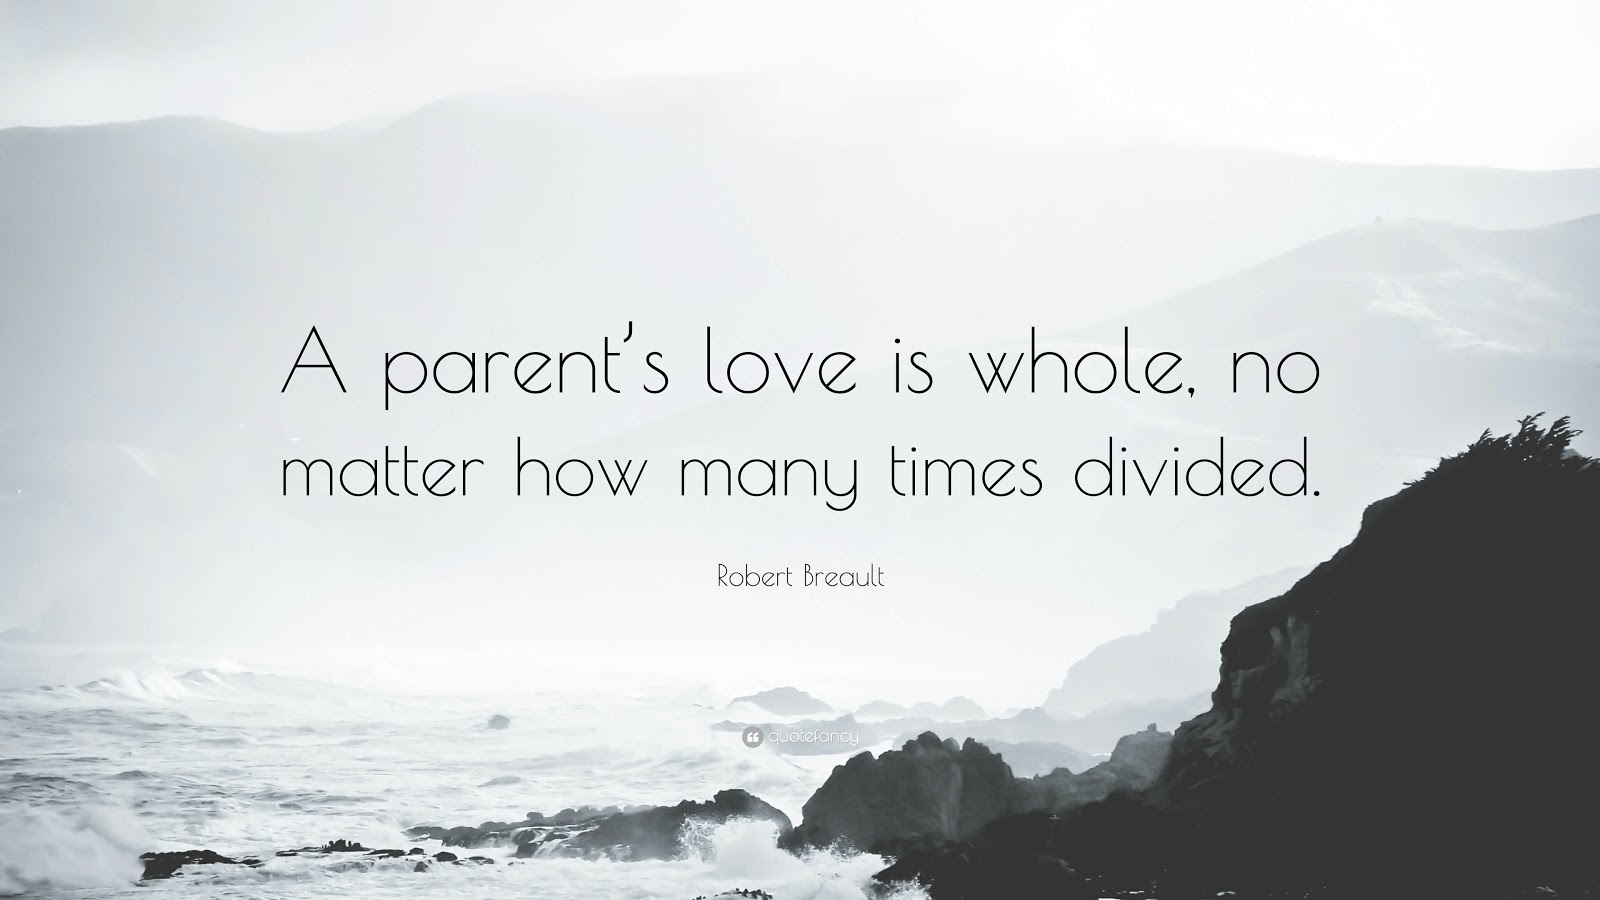 A parent's love is whole no matter how many times divided.